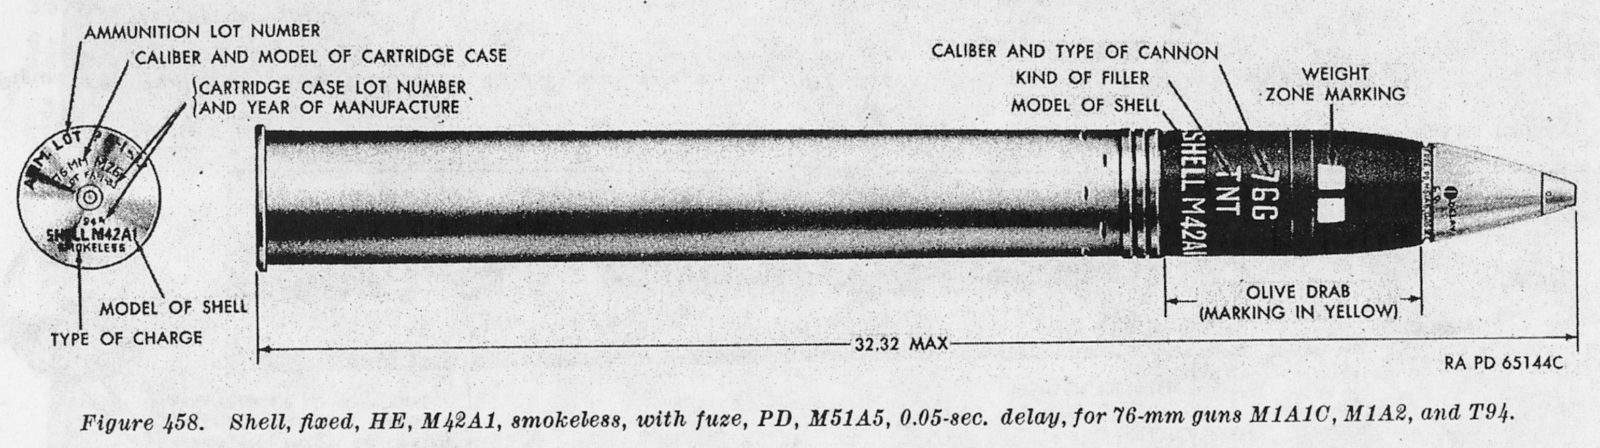 F458-M42A1-HE-for-M1A1-76-guns-from-9-70